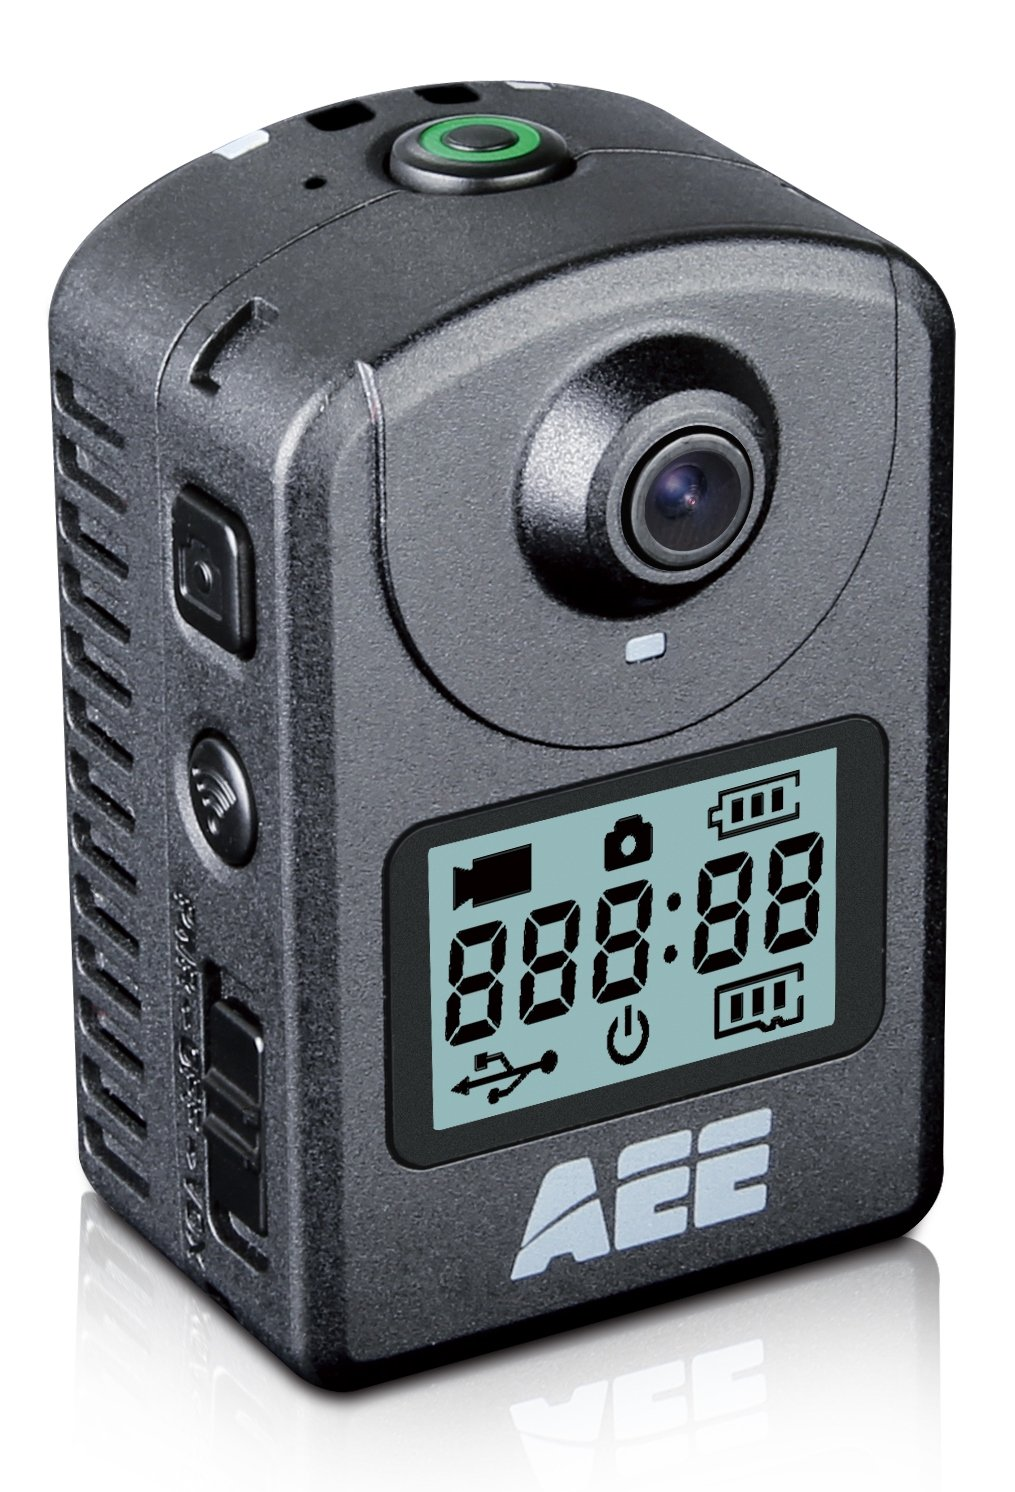 bebd3f83106 ... AEE Technology Action Cam MD10 1080P 30 8MP Ultra Compact Body Wi-Fi  Waterproof ...